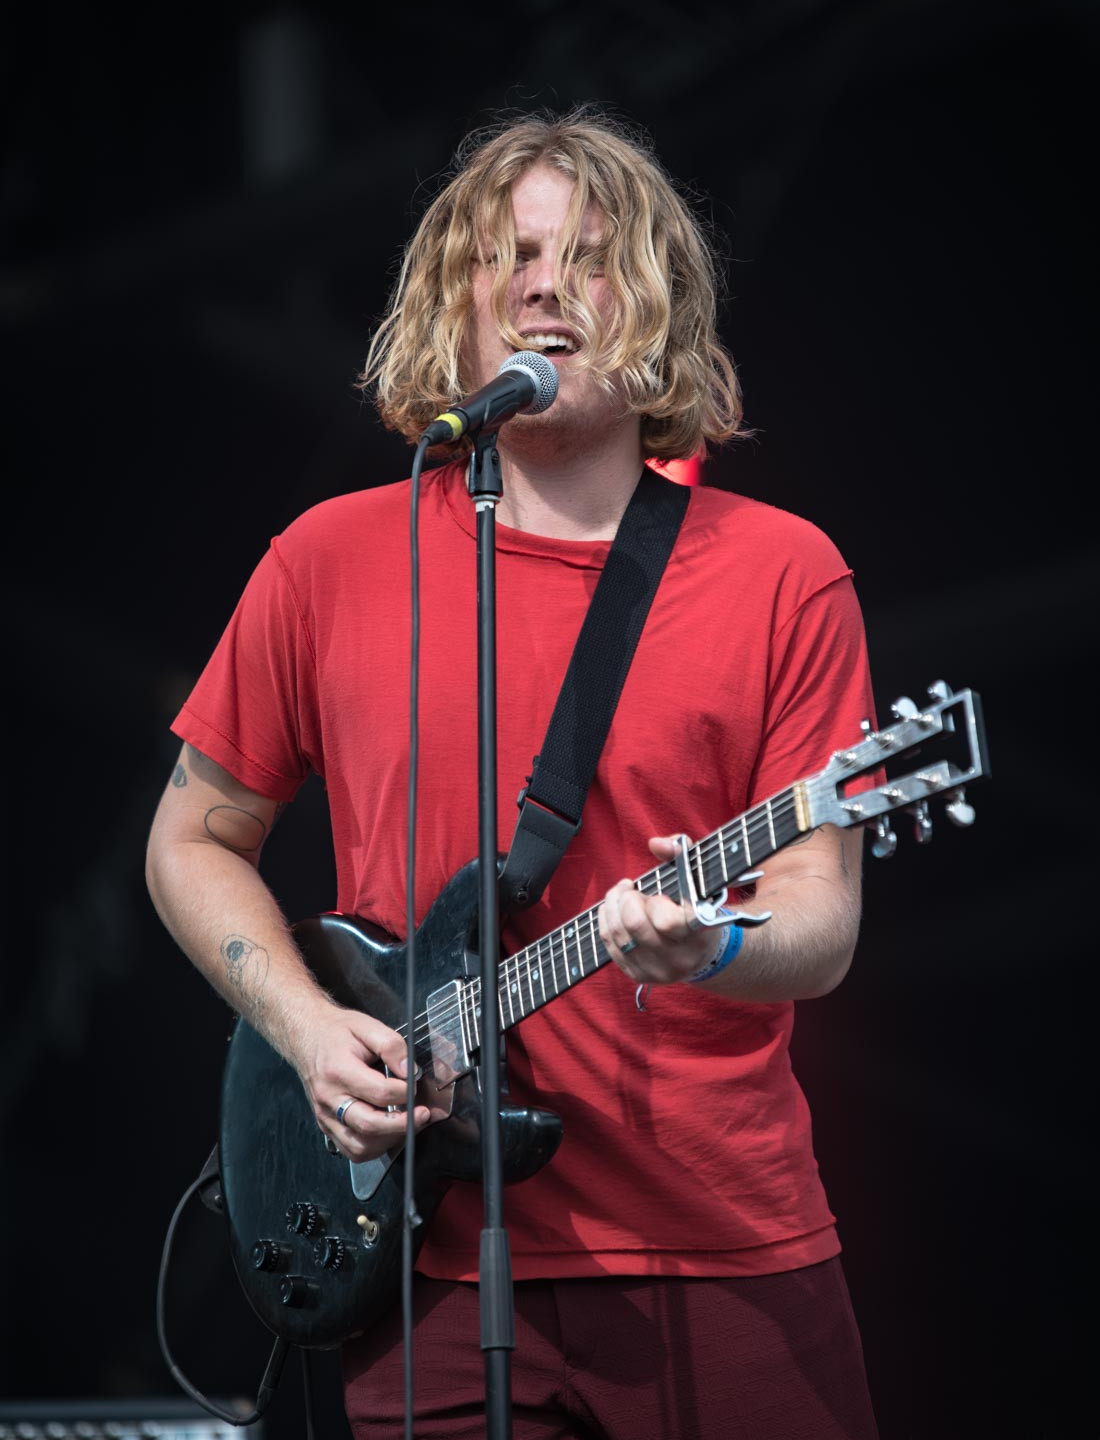 The American rock artist Ty Segall, live at Rock en Seine festival, Paris, France, August 2017.  On assignment for ZYVA Magazine All rights reserved.